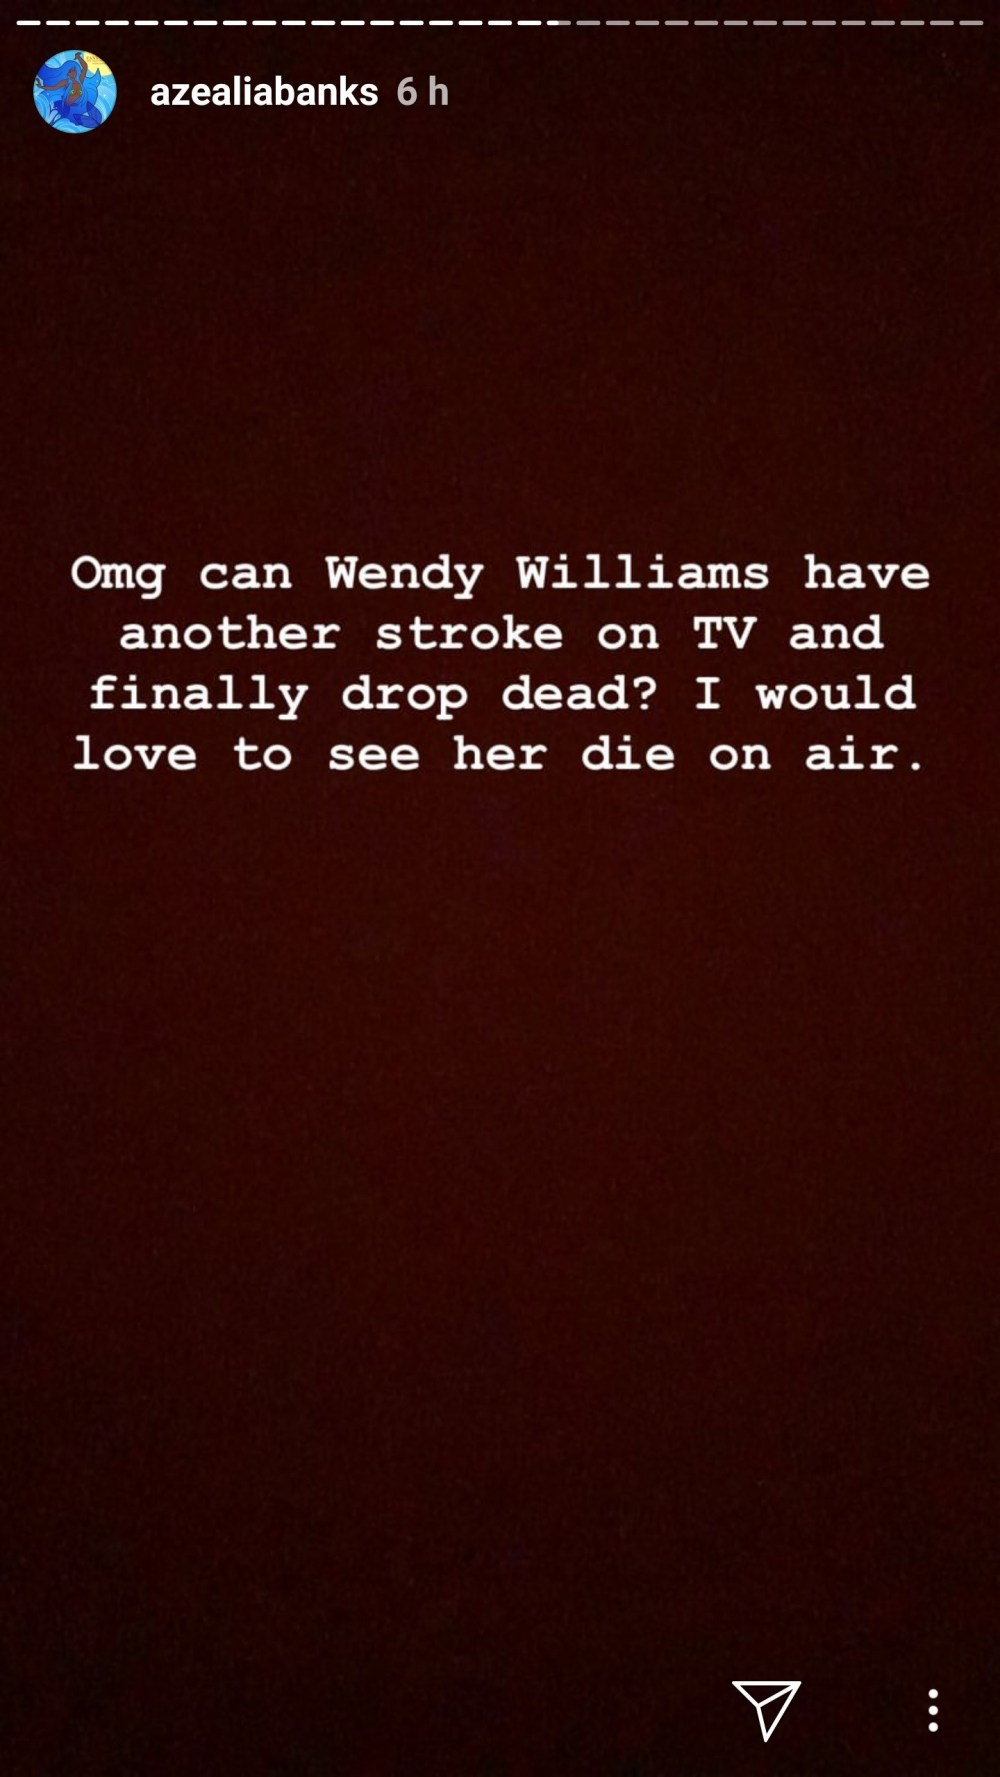 Rapper Azealia Banks blasts Wendy Williams, says she would love to see her have another stroke and die on air